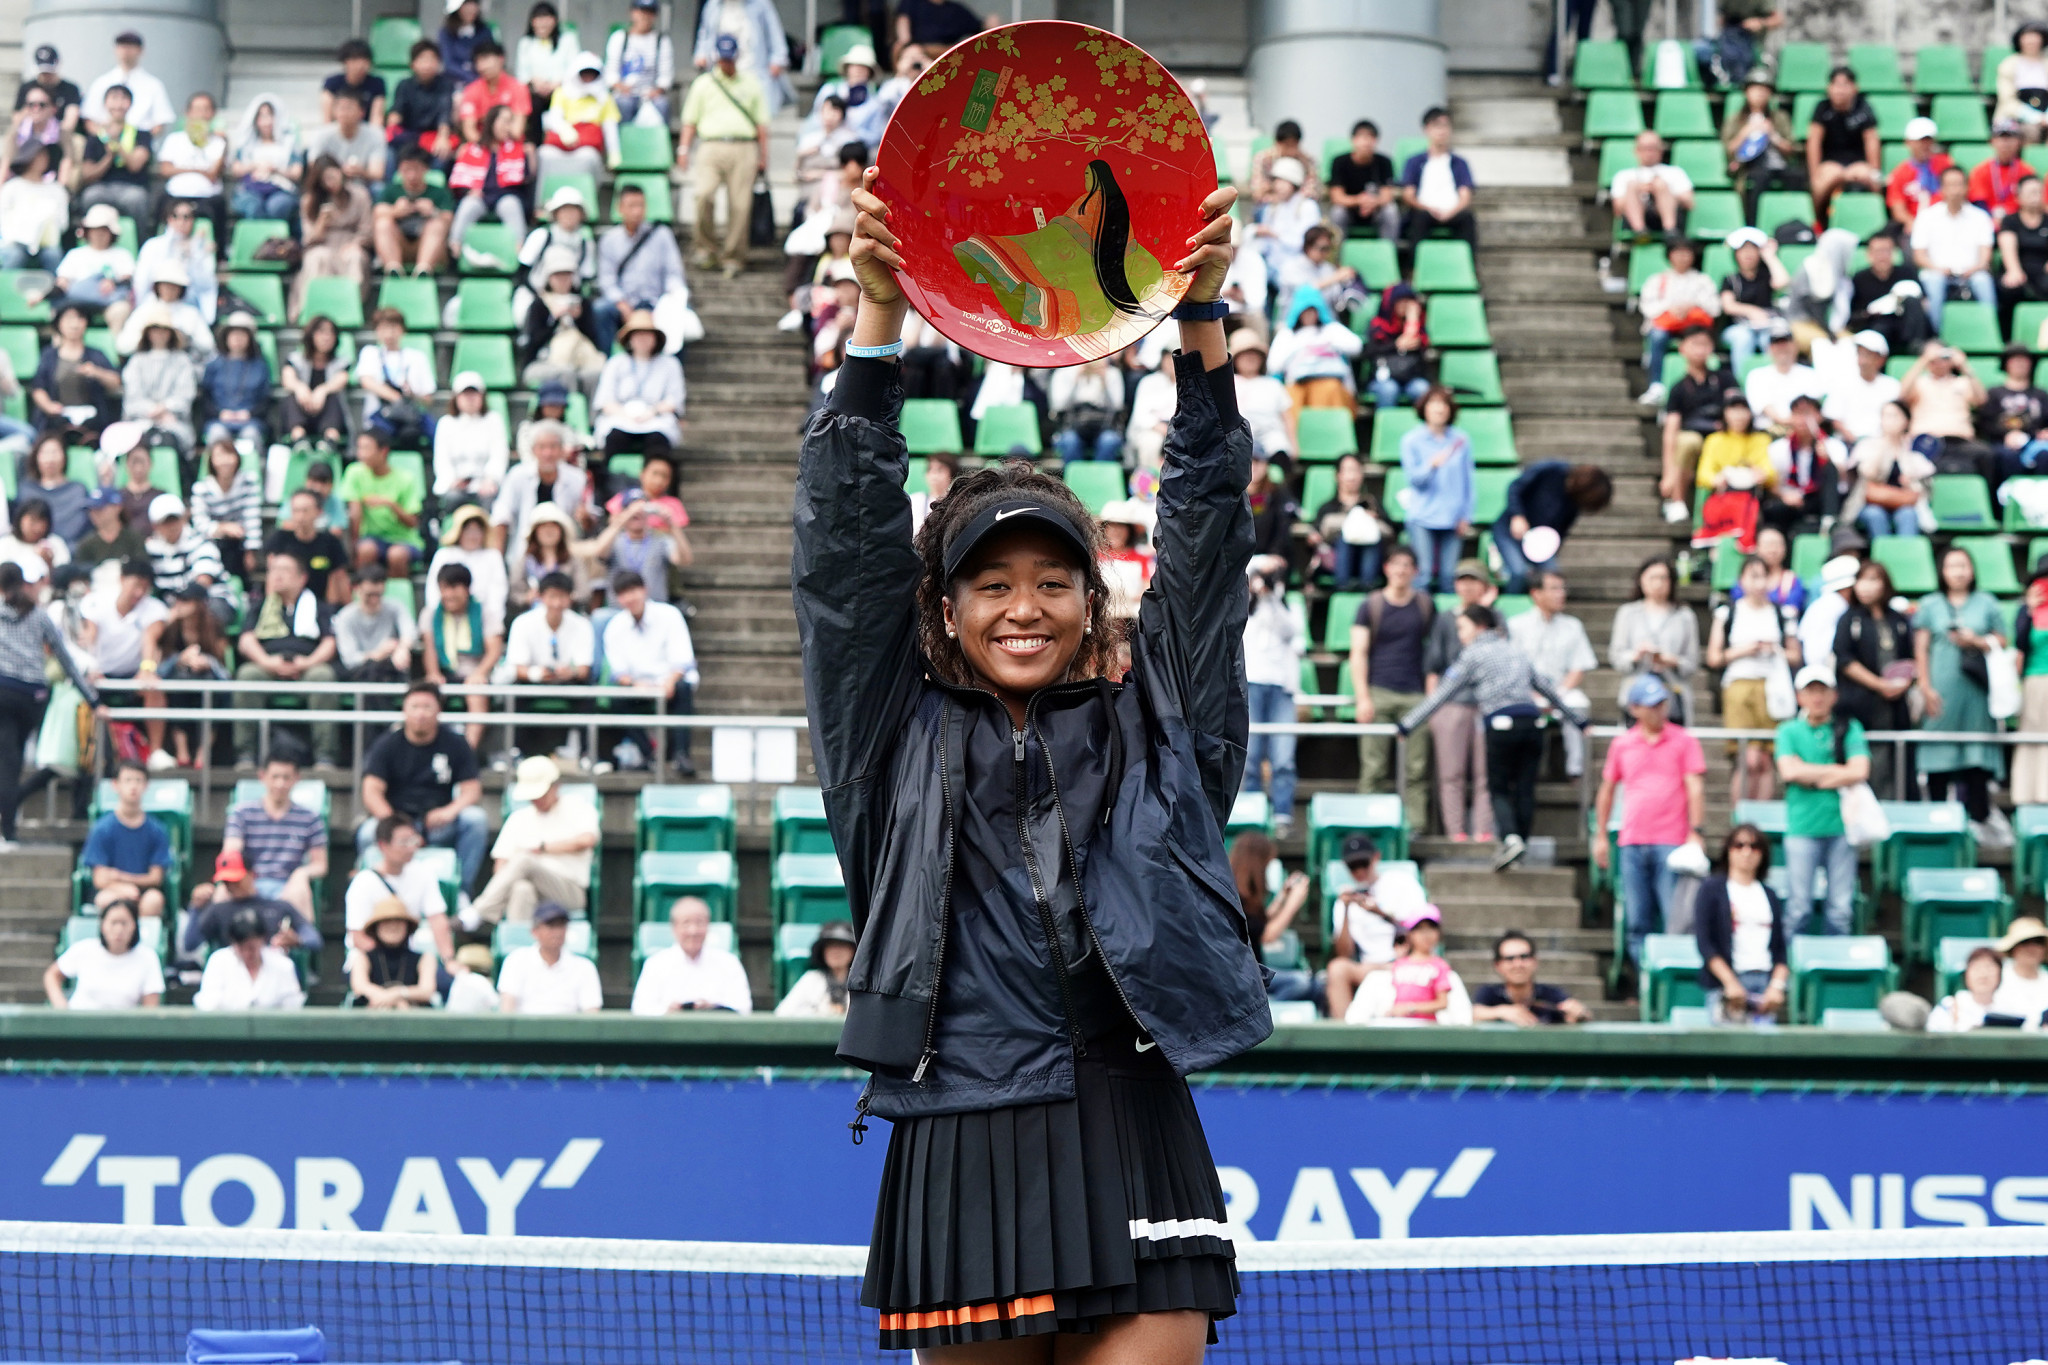 The Pan Pacific Open, which was won by Naomi Osaka in 2019, will also not take place in 2021 ©Getty Images